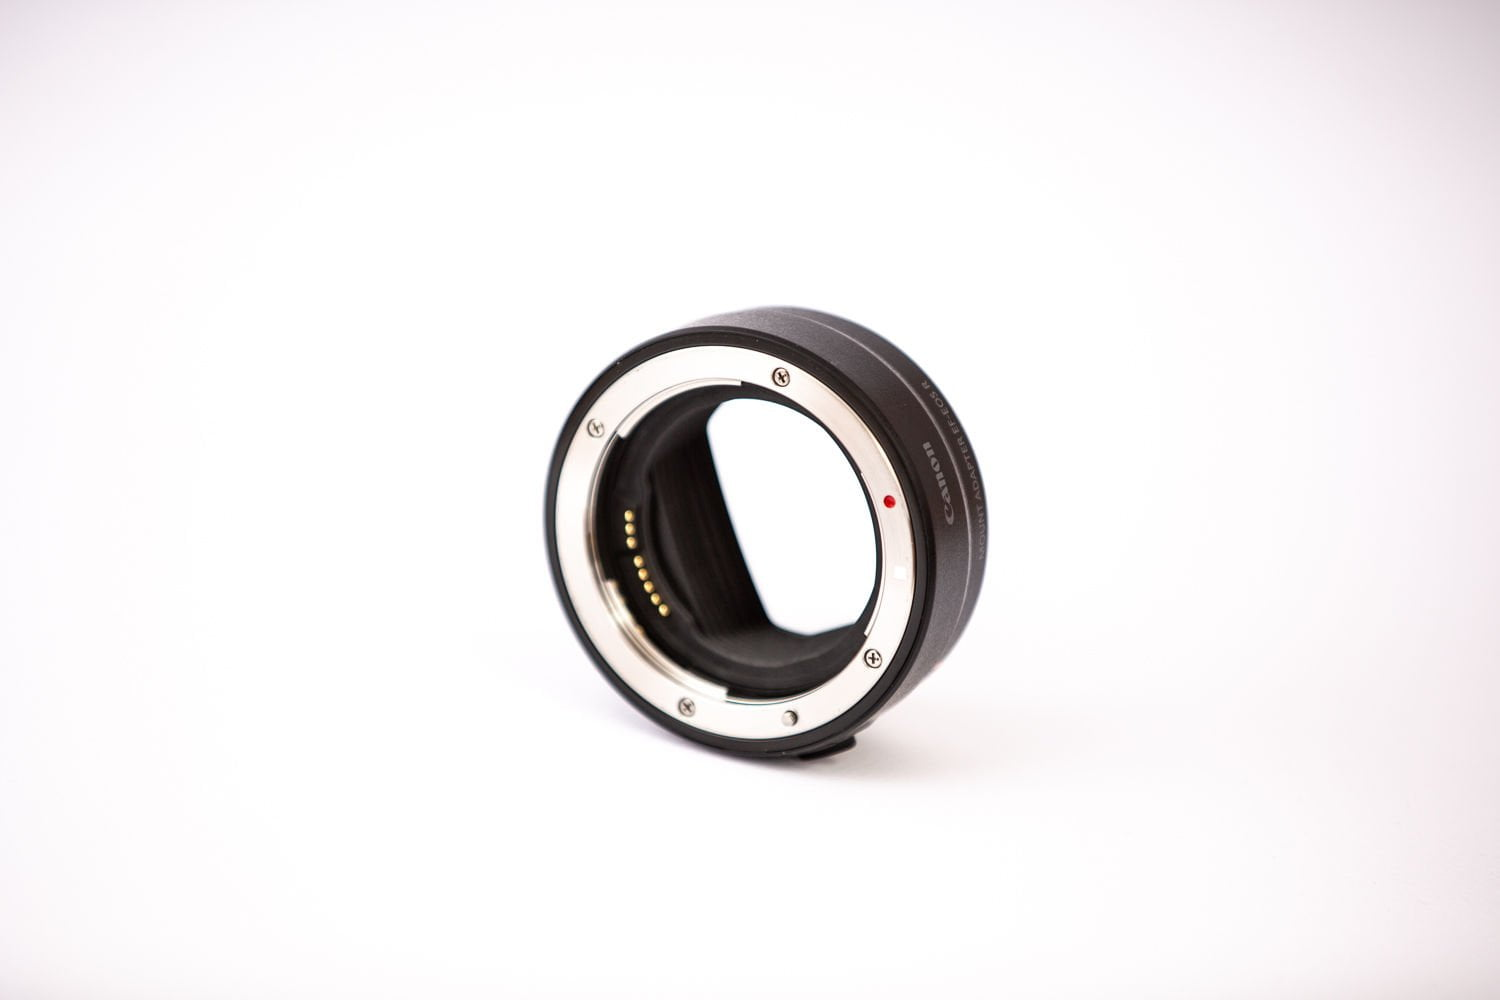 EF / EF-S lens adapter - front view